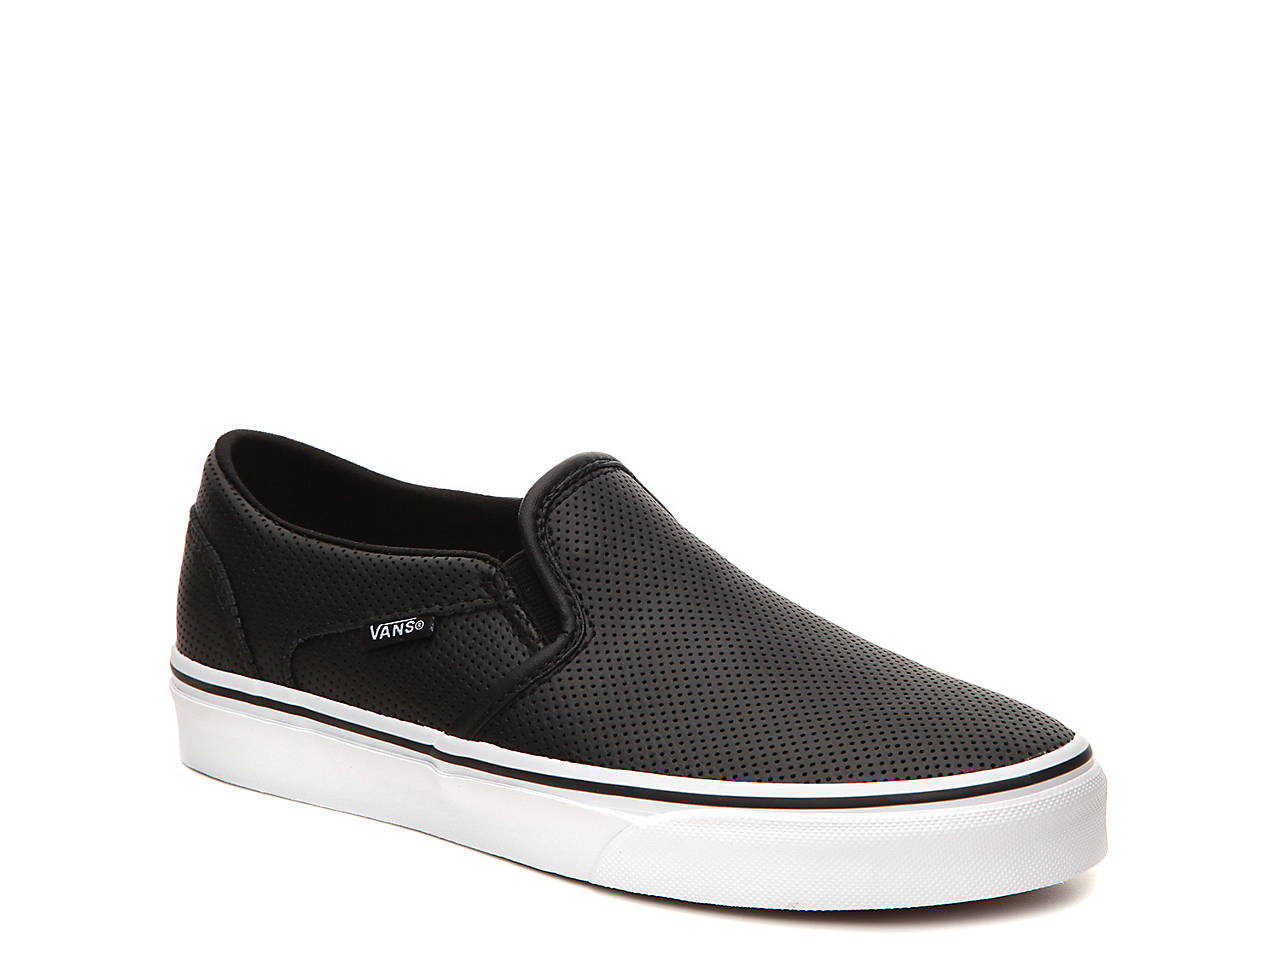 3c10746c776b Vans Asher Perforated Slip-On Sneaker - Women s Women s Shoes